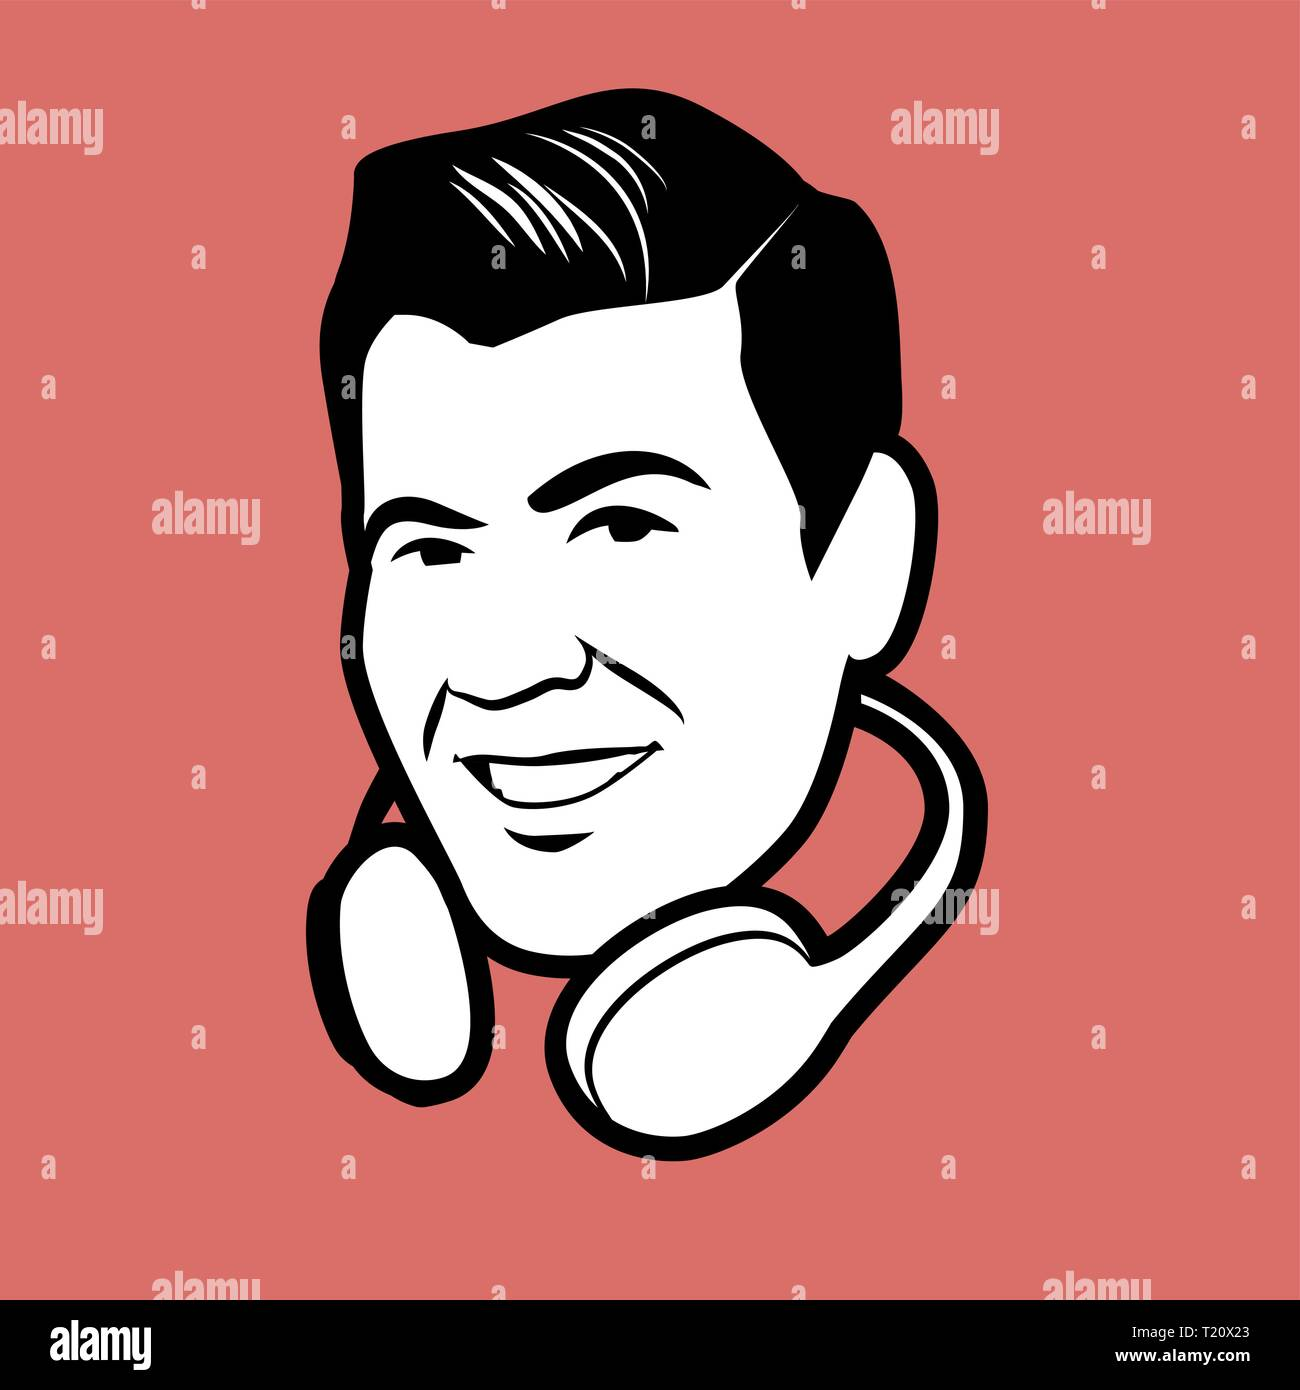 Man retro style with headphones around the head isolated on red background - Stock Vector